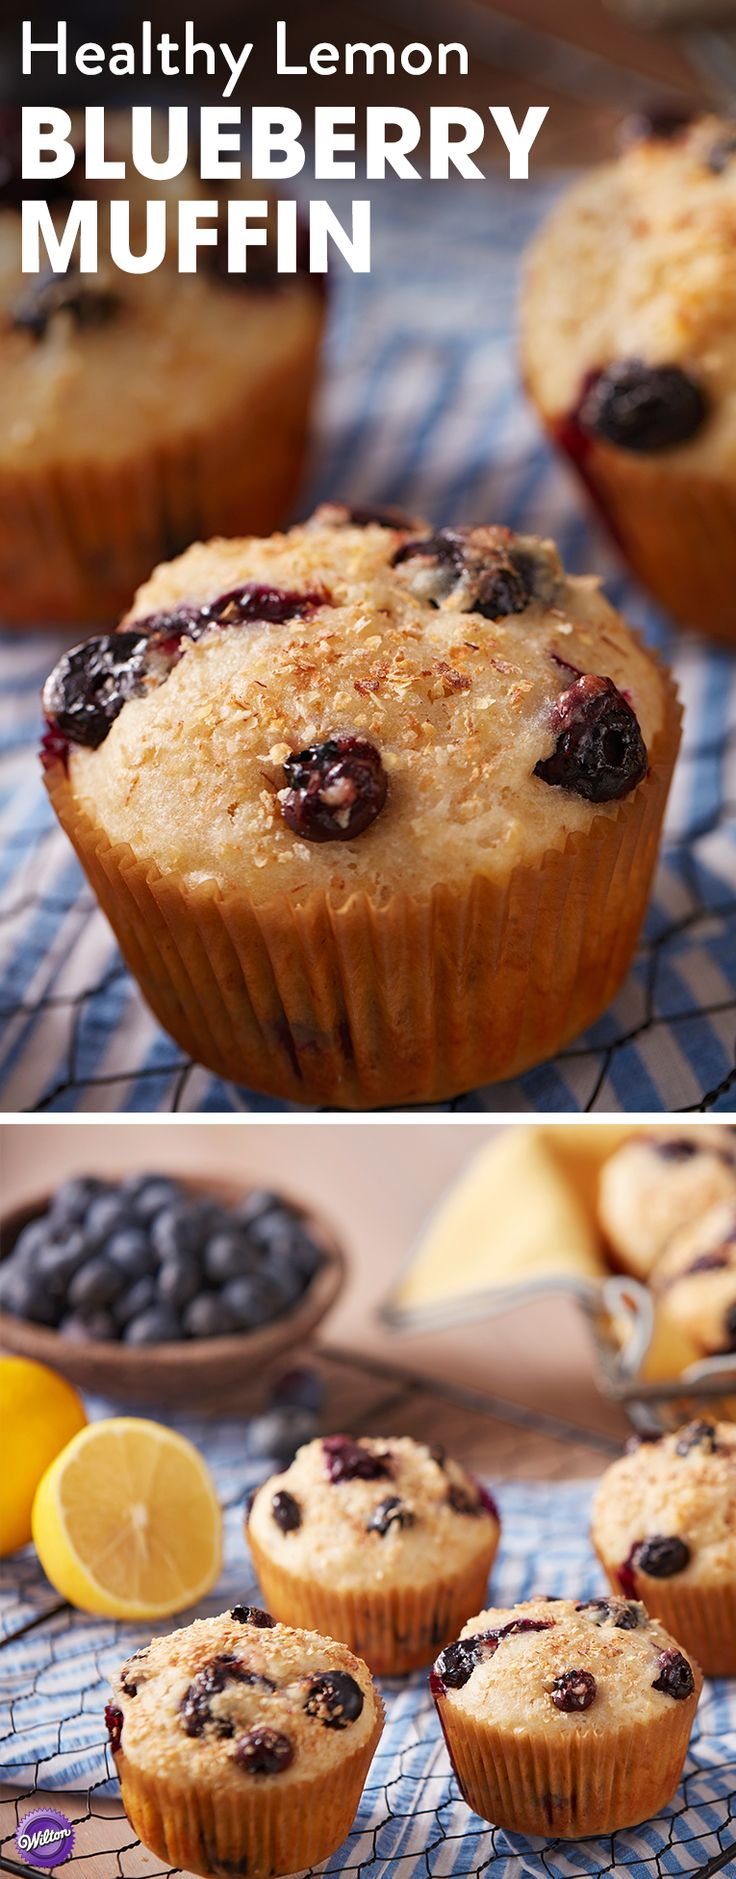 Lemon Blueberry Muffin Recipe - Packed full of wheat germ, agave nectar, low-fat buttermilk and tasty blueberries, these Healthier Lemon Blueberry Muffins offer a better-for-you option for a quick breakfast on the go. Best of all, these muffins taste so good that no one will know that they're packed full of goodness! Indulge your cravings without the guilt with these tasty and delicious lemon blueberry muffins.